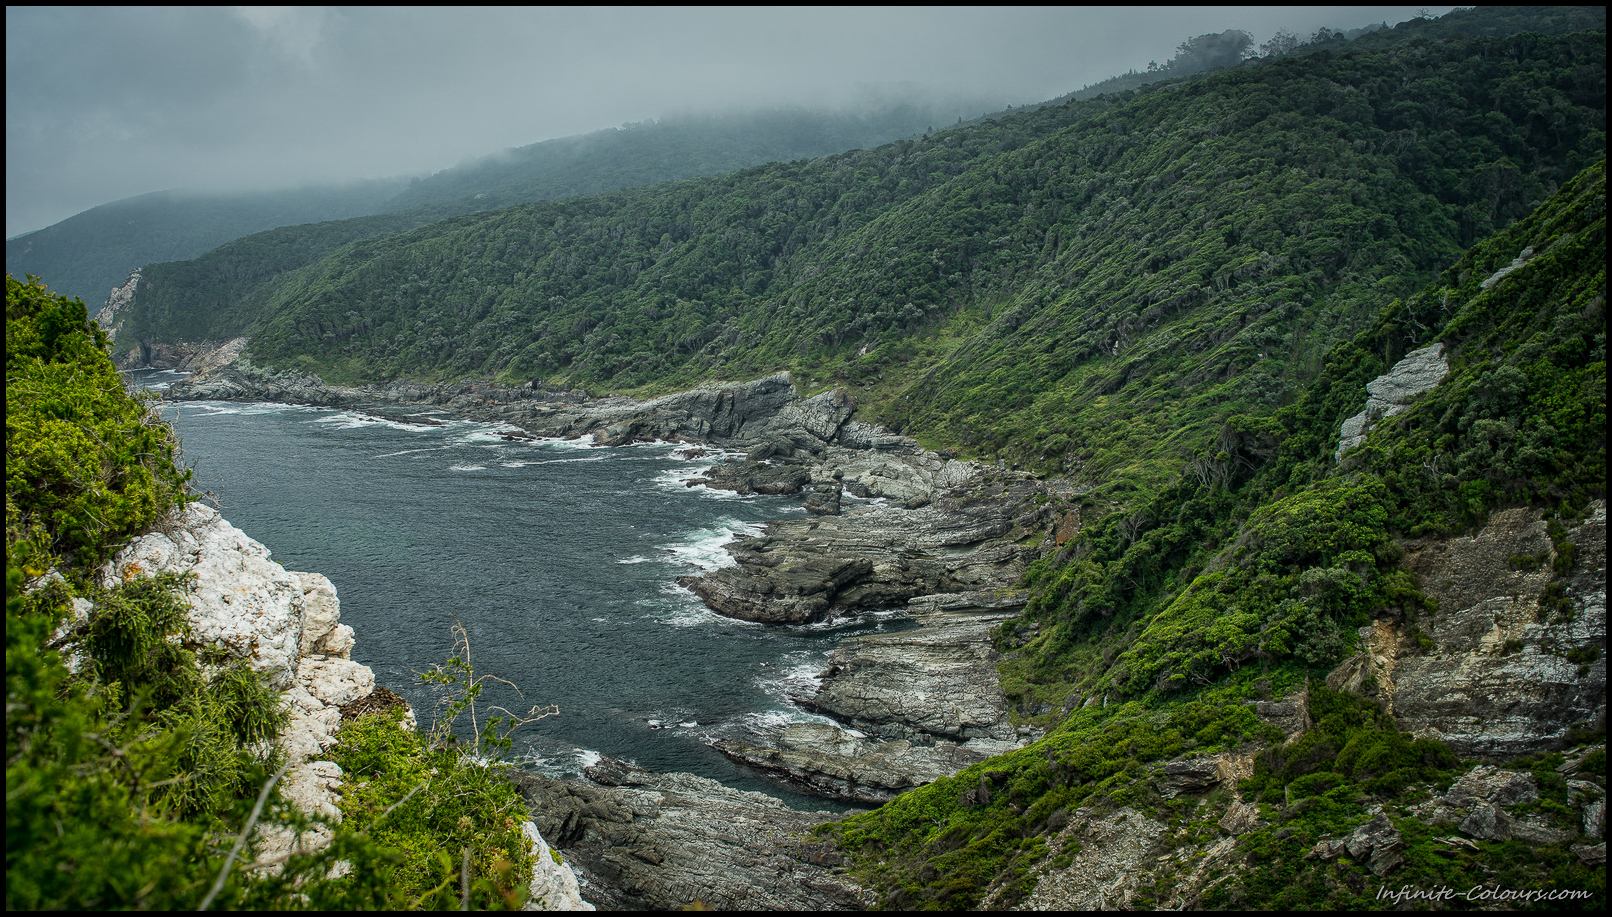 Skilderkrans is a massive outcrop of quartzite and provides an interesting view down the rugged Tsitsikamma coast